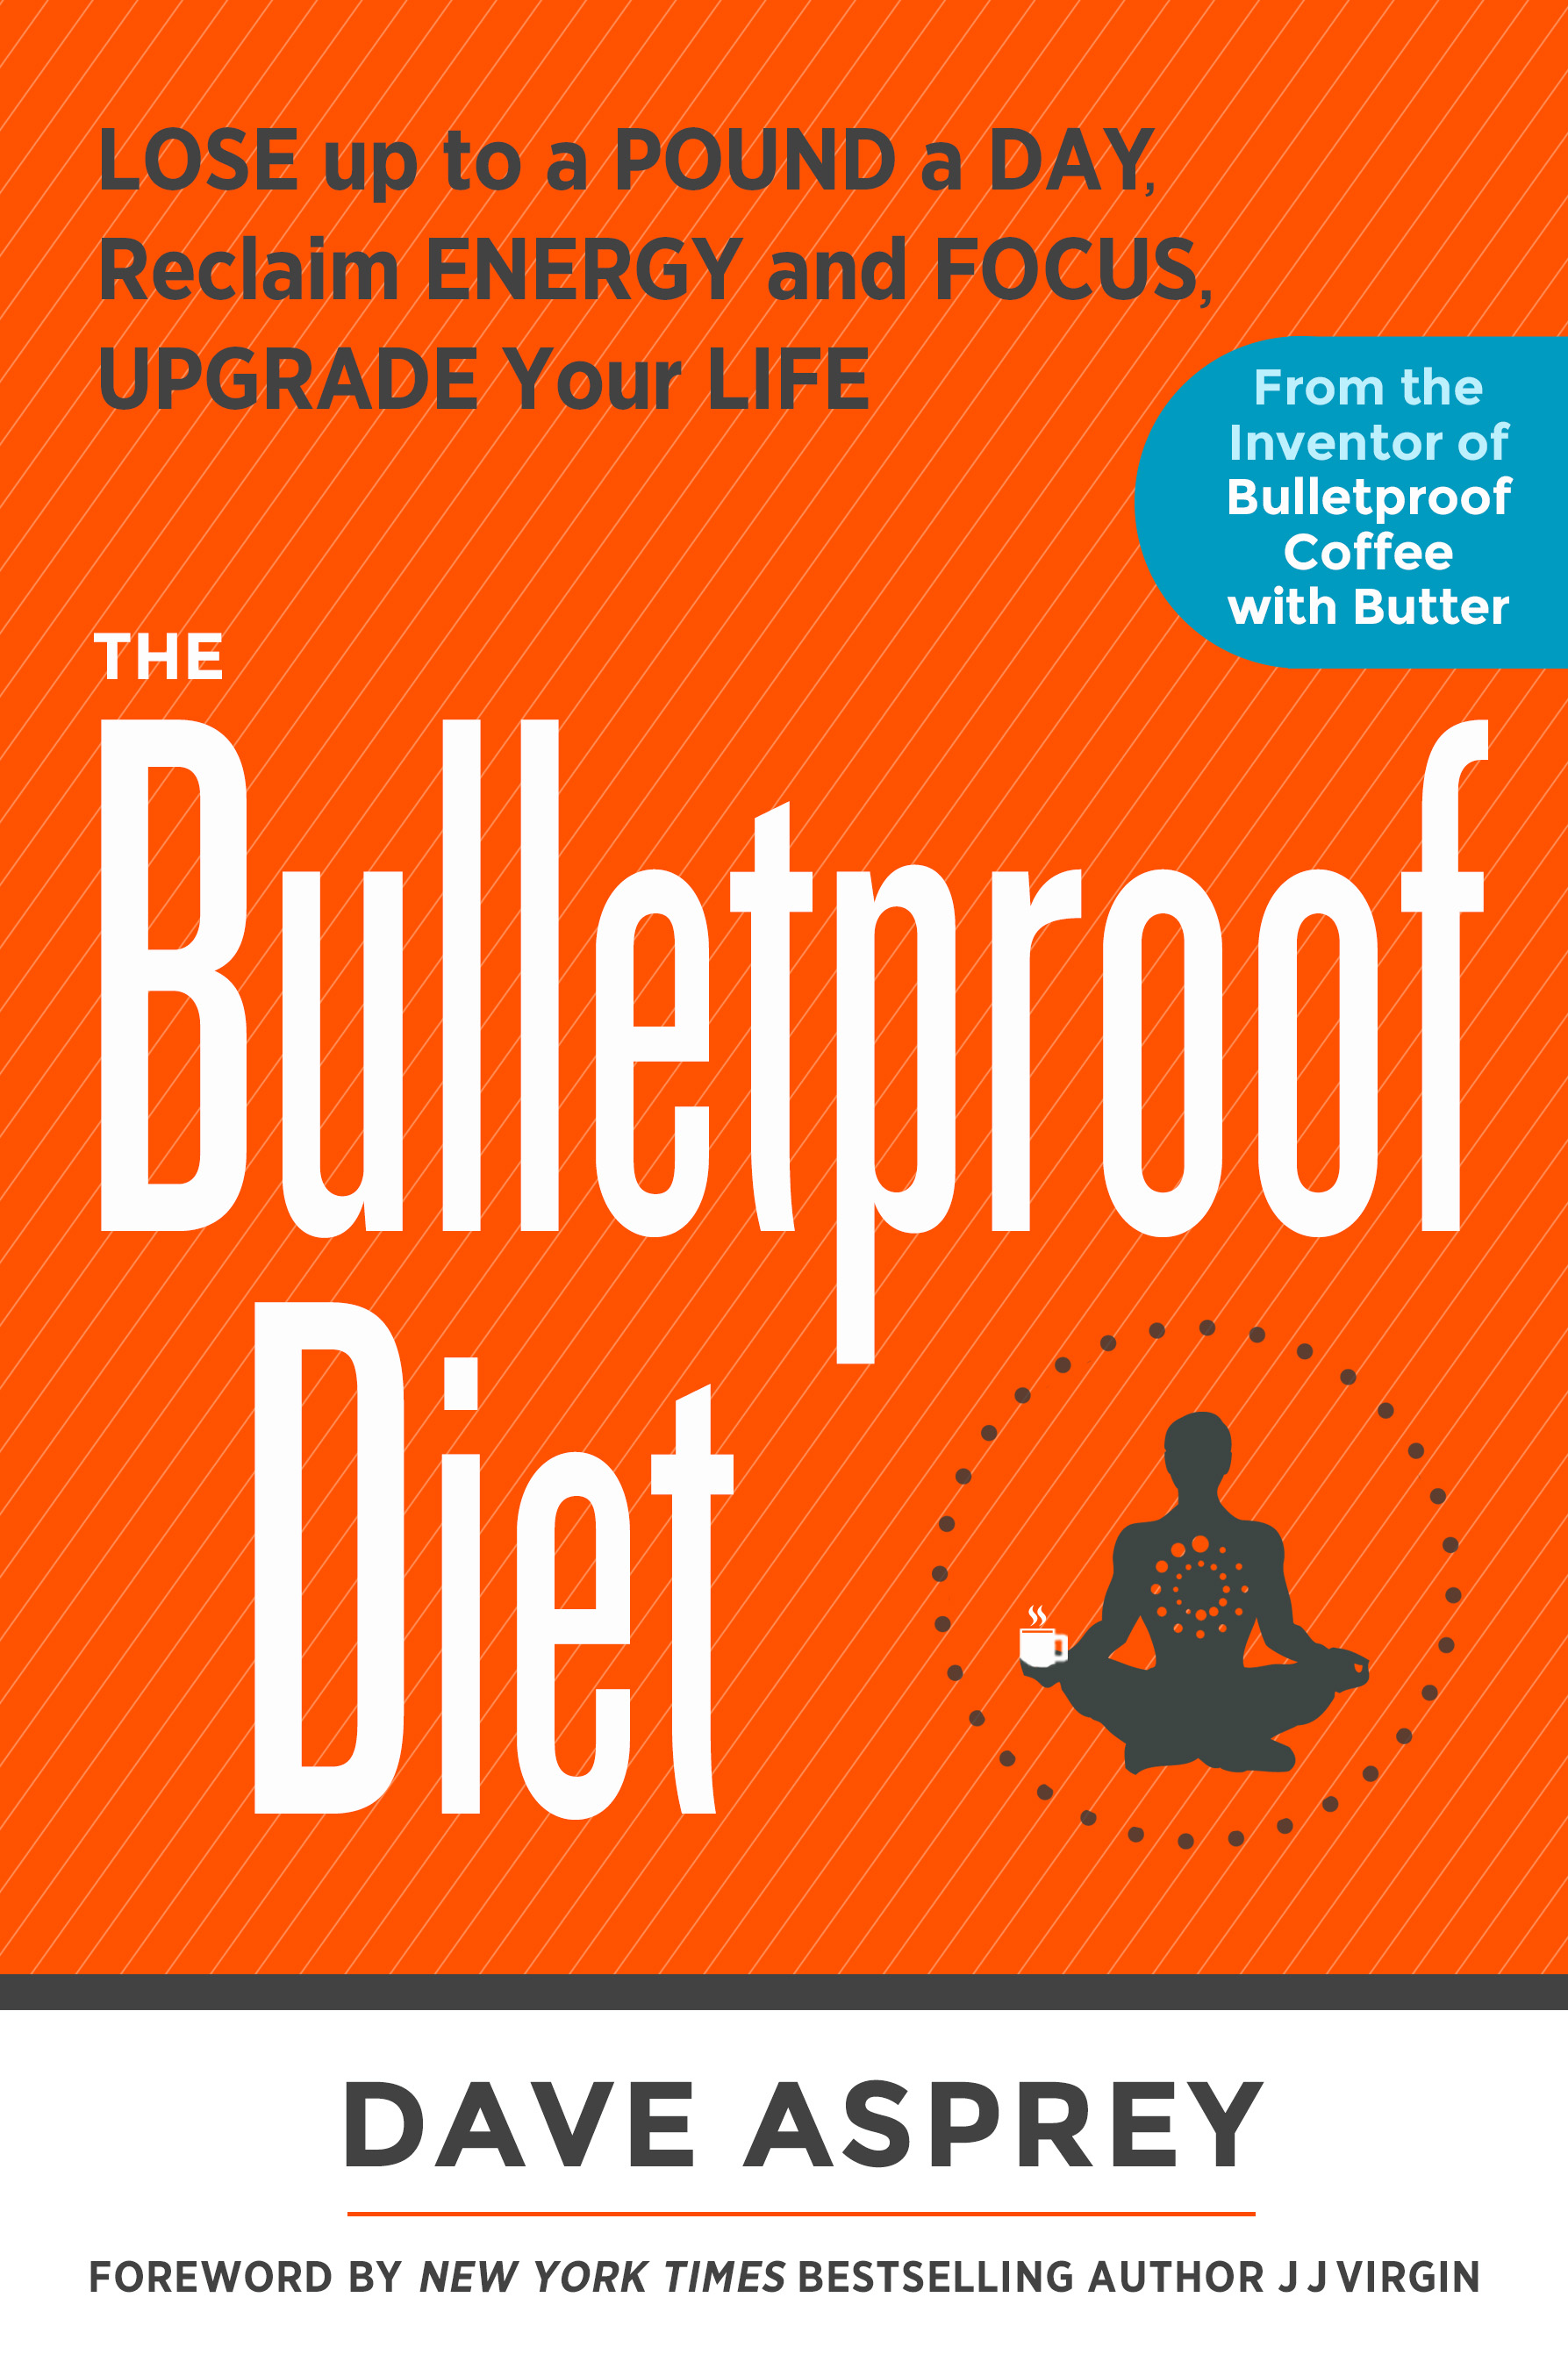 The Bulletproof Diet Is Everything Wrong With Eating In America Vox - Julia belluz us map and diets